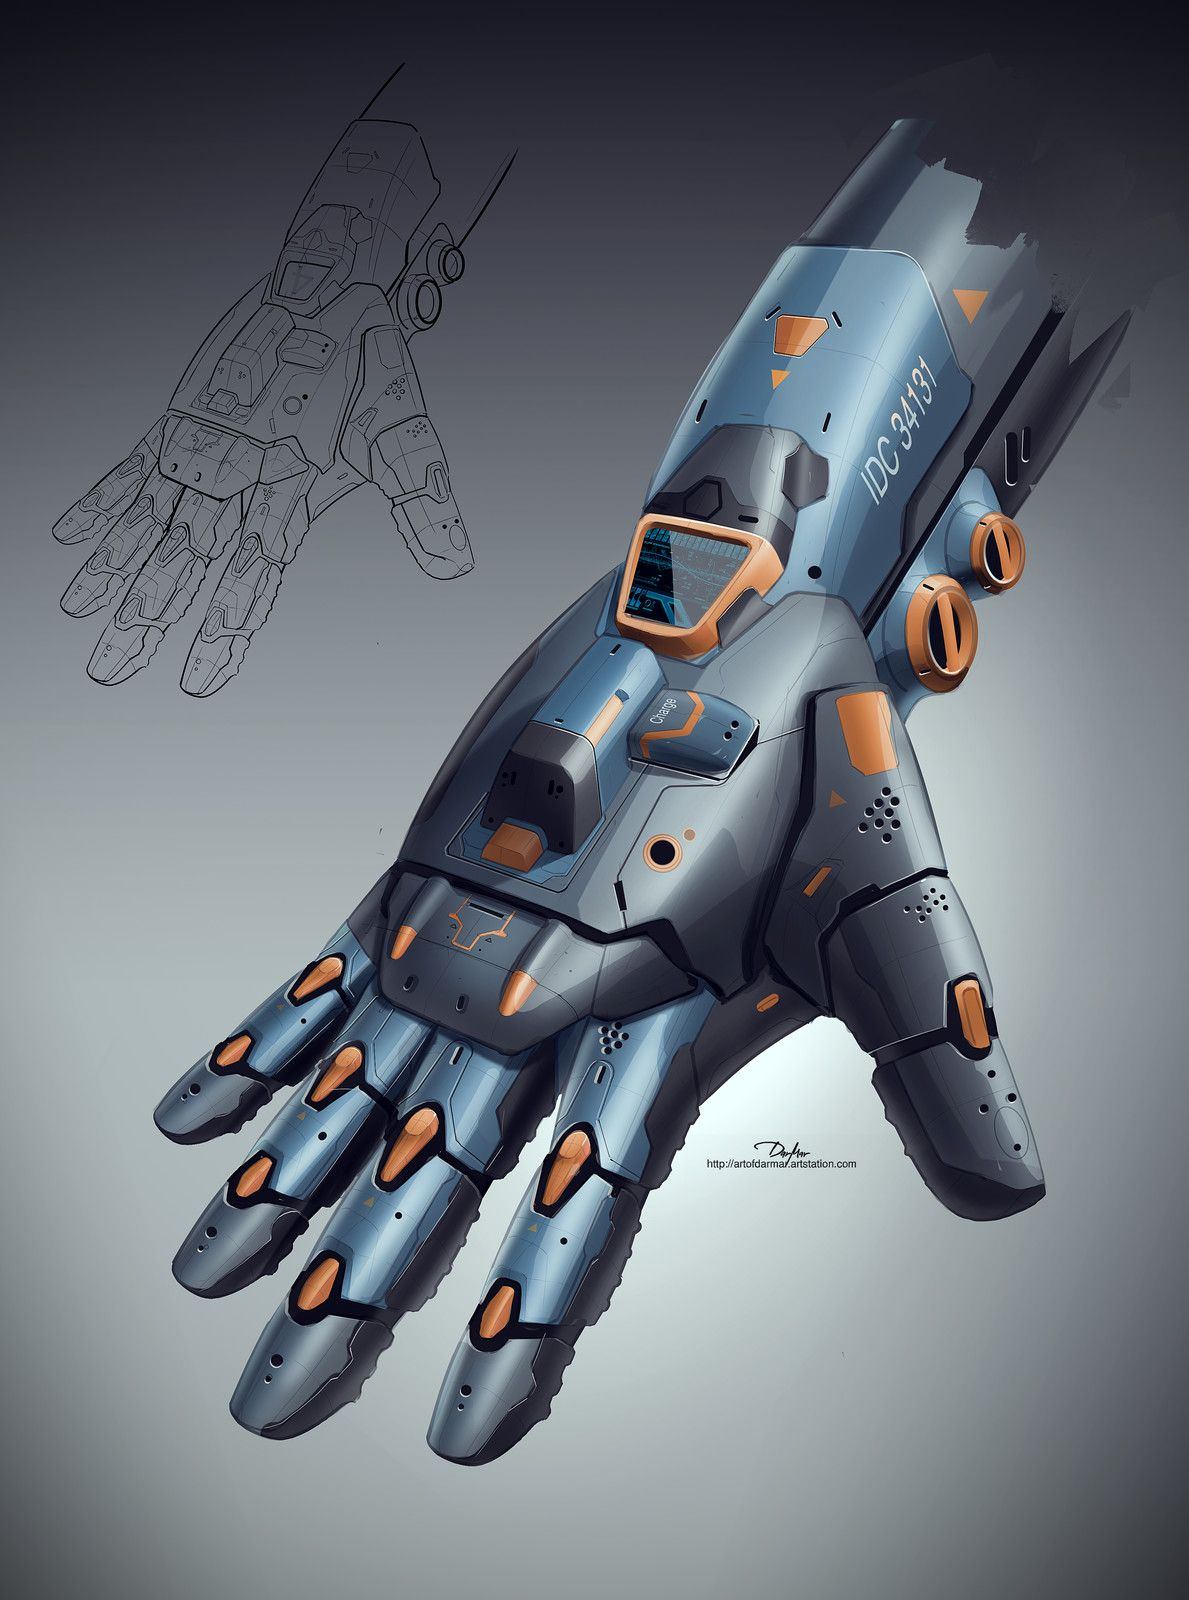 MECHANICAL ARMOR HAND 01, DARKO DARMAR MARKOVIC on